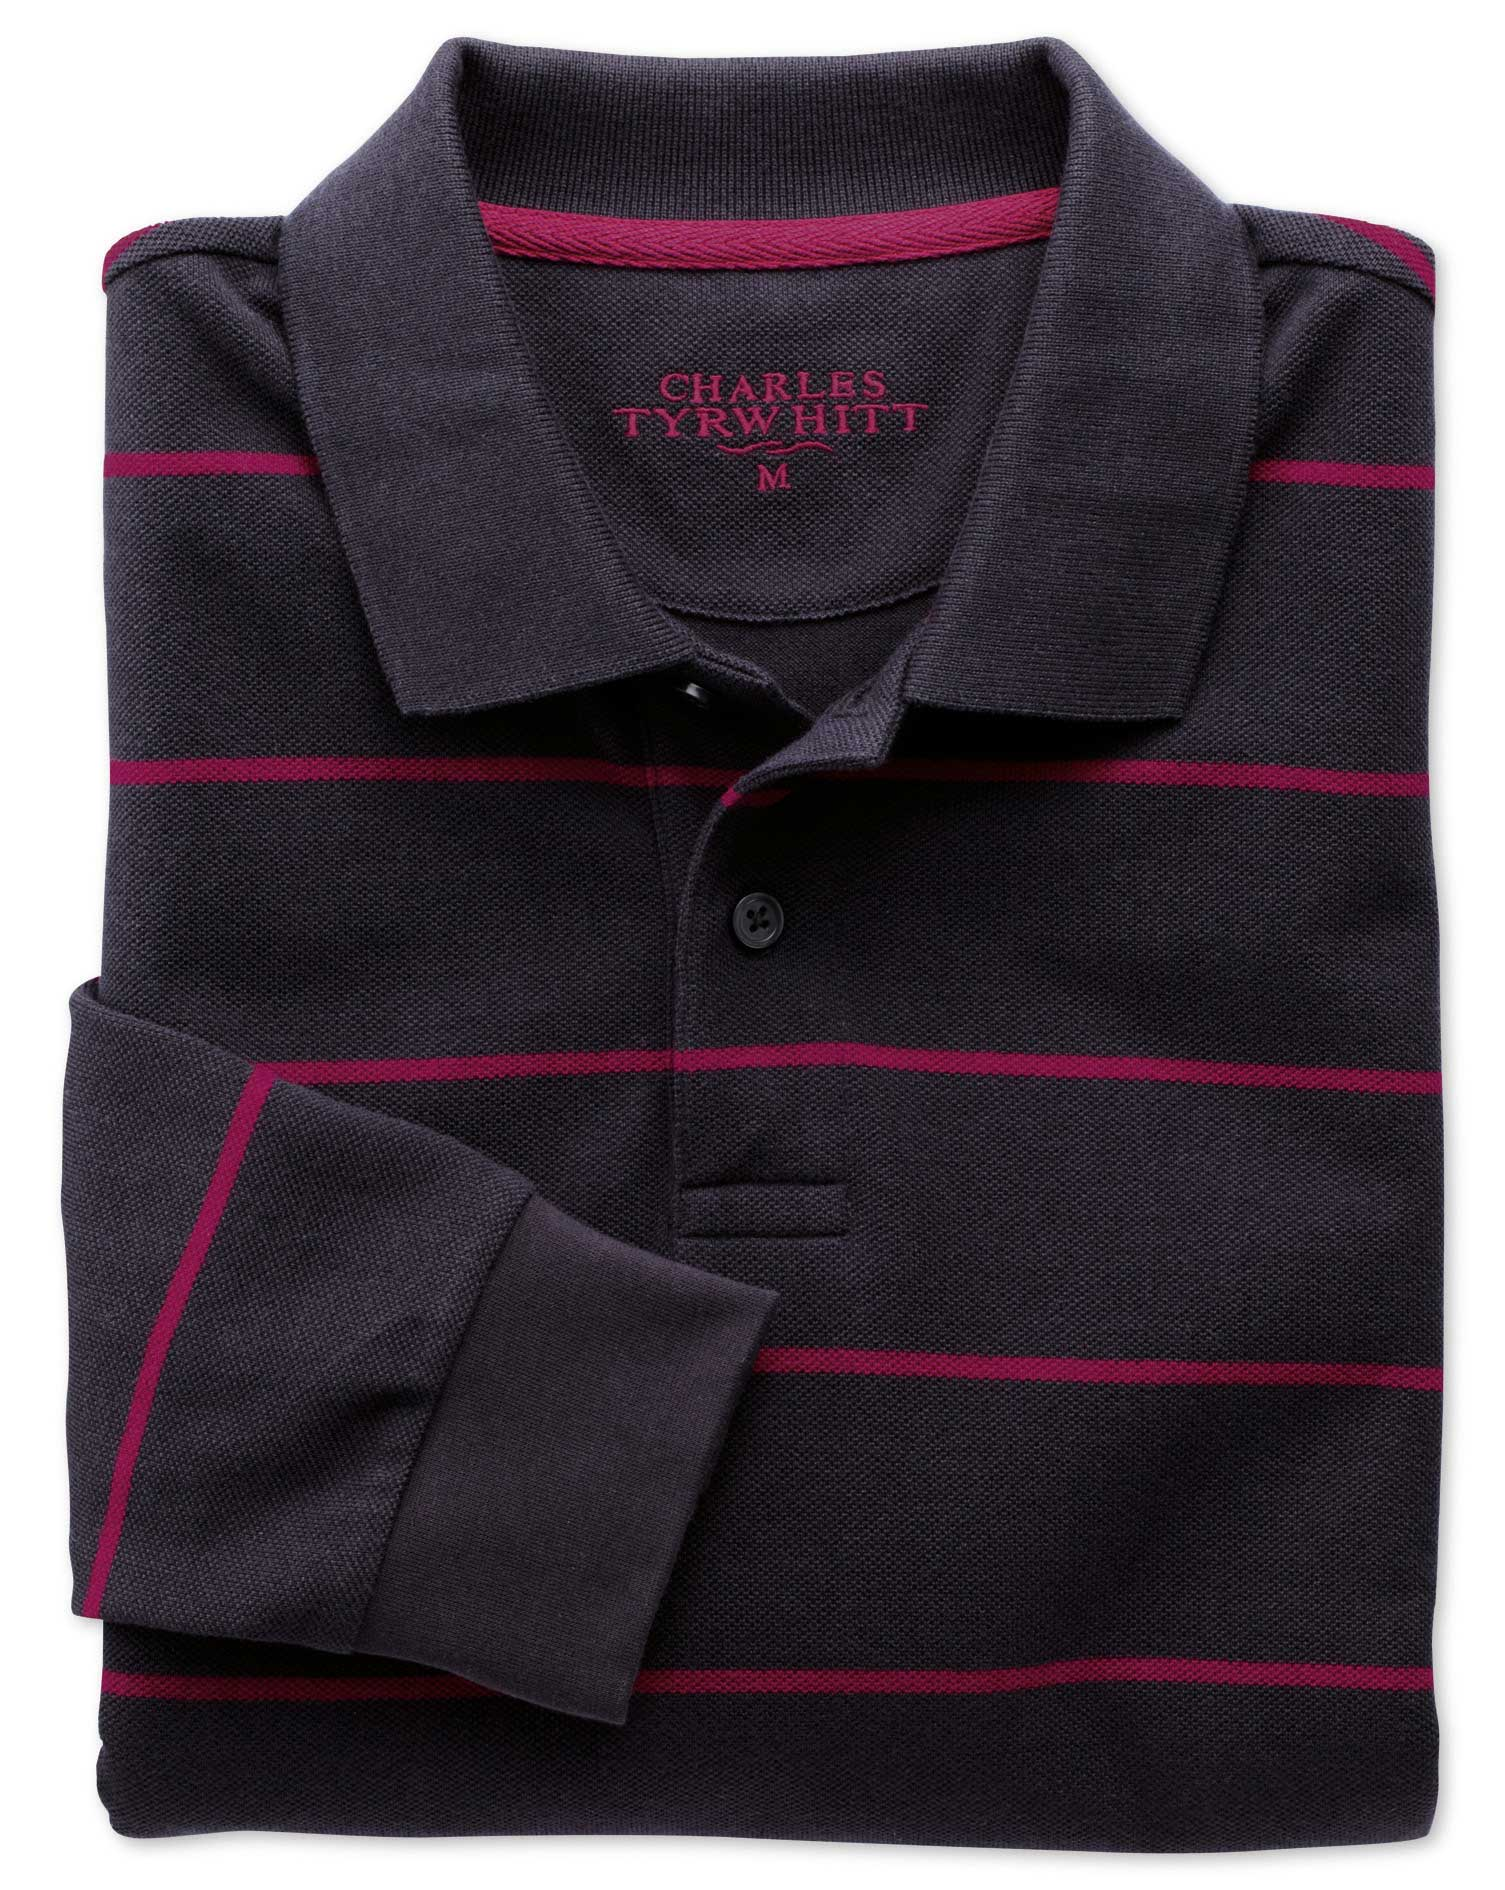 Navy and Berry Stripe Pique Long Sleeve Cotton Polo Size XXXL by Charles Tyrwhitt